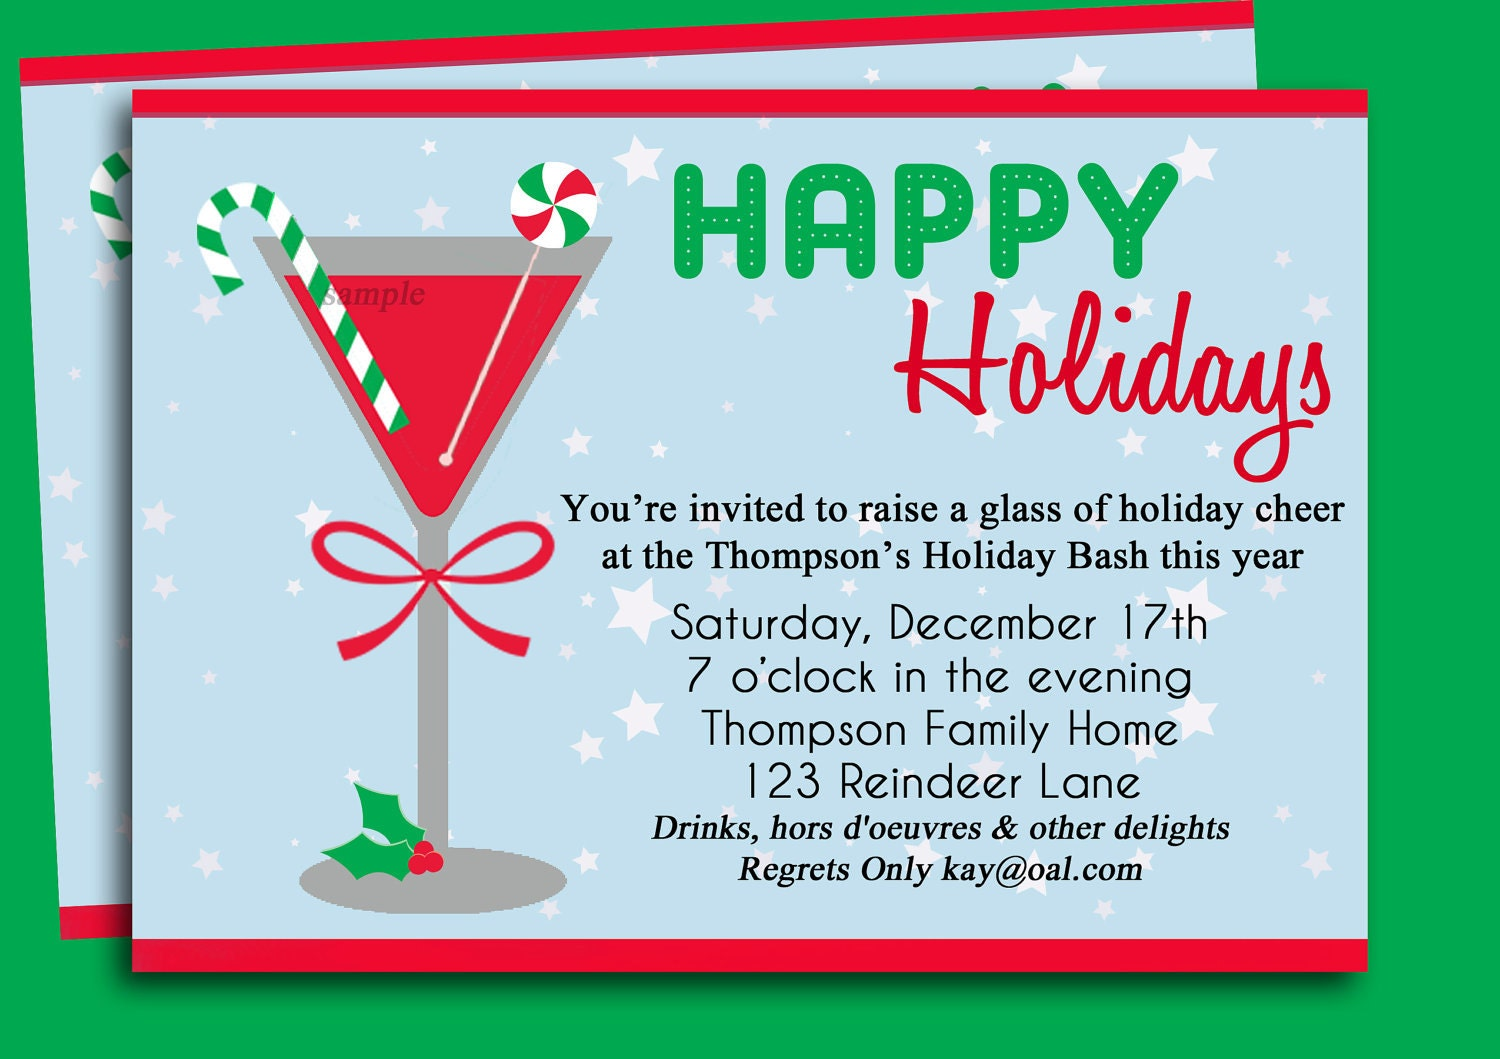 Christmas Cocktail Party Invitation Printable Holiday – Printable Christmas Party Invitation